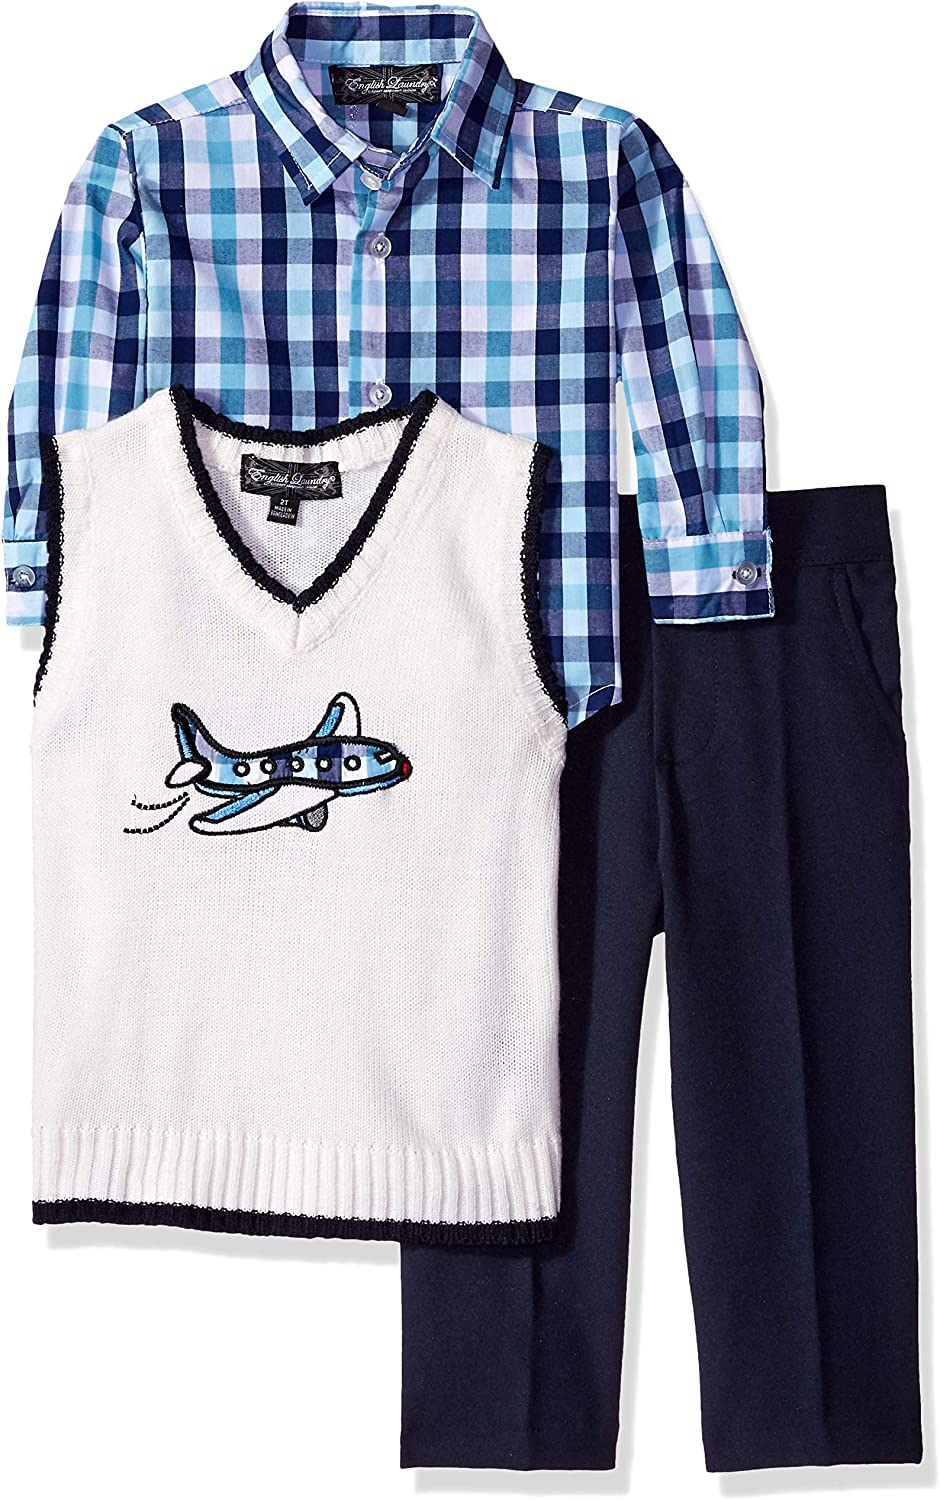 English Laundry Boys' Toddler 3 Piece Applique Sweater Vest, Sport Shirt, Pant Set